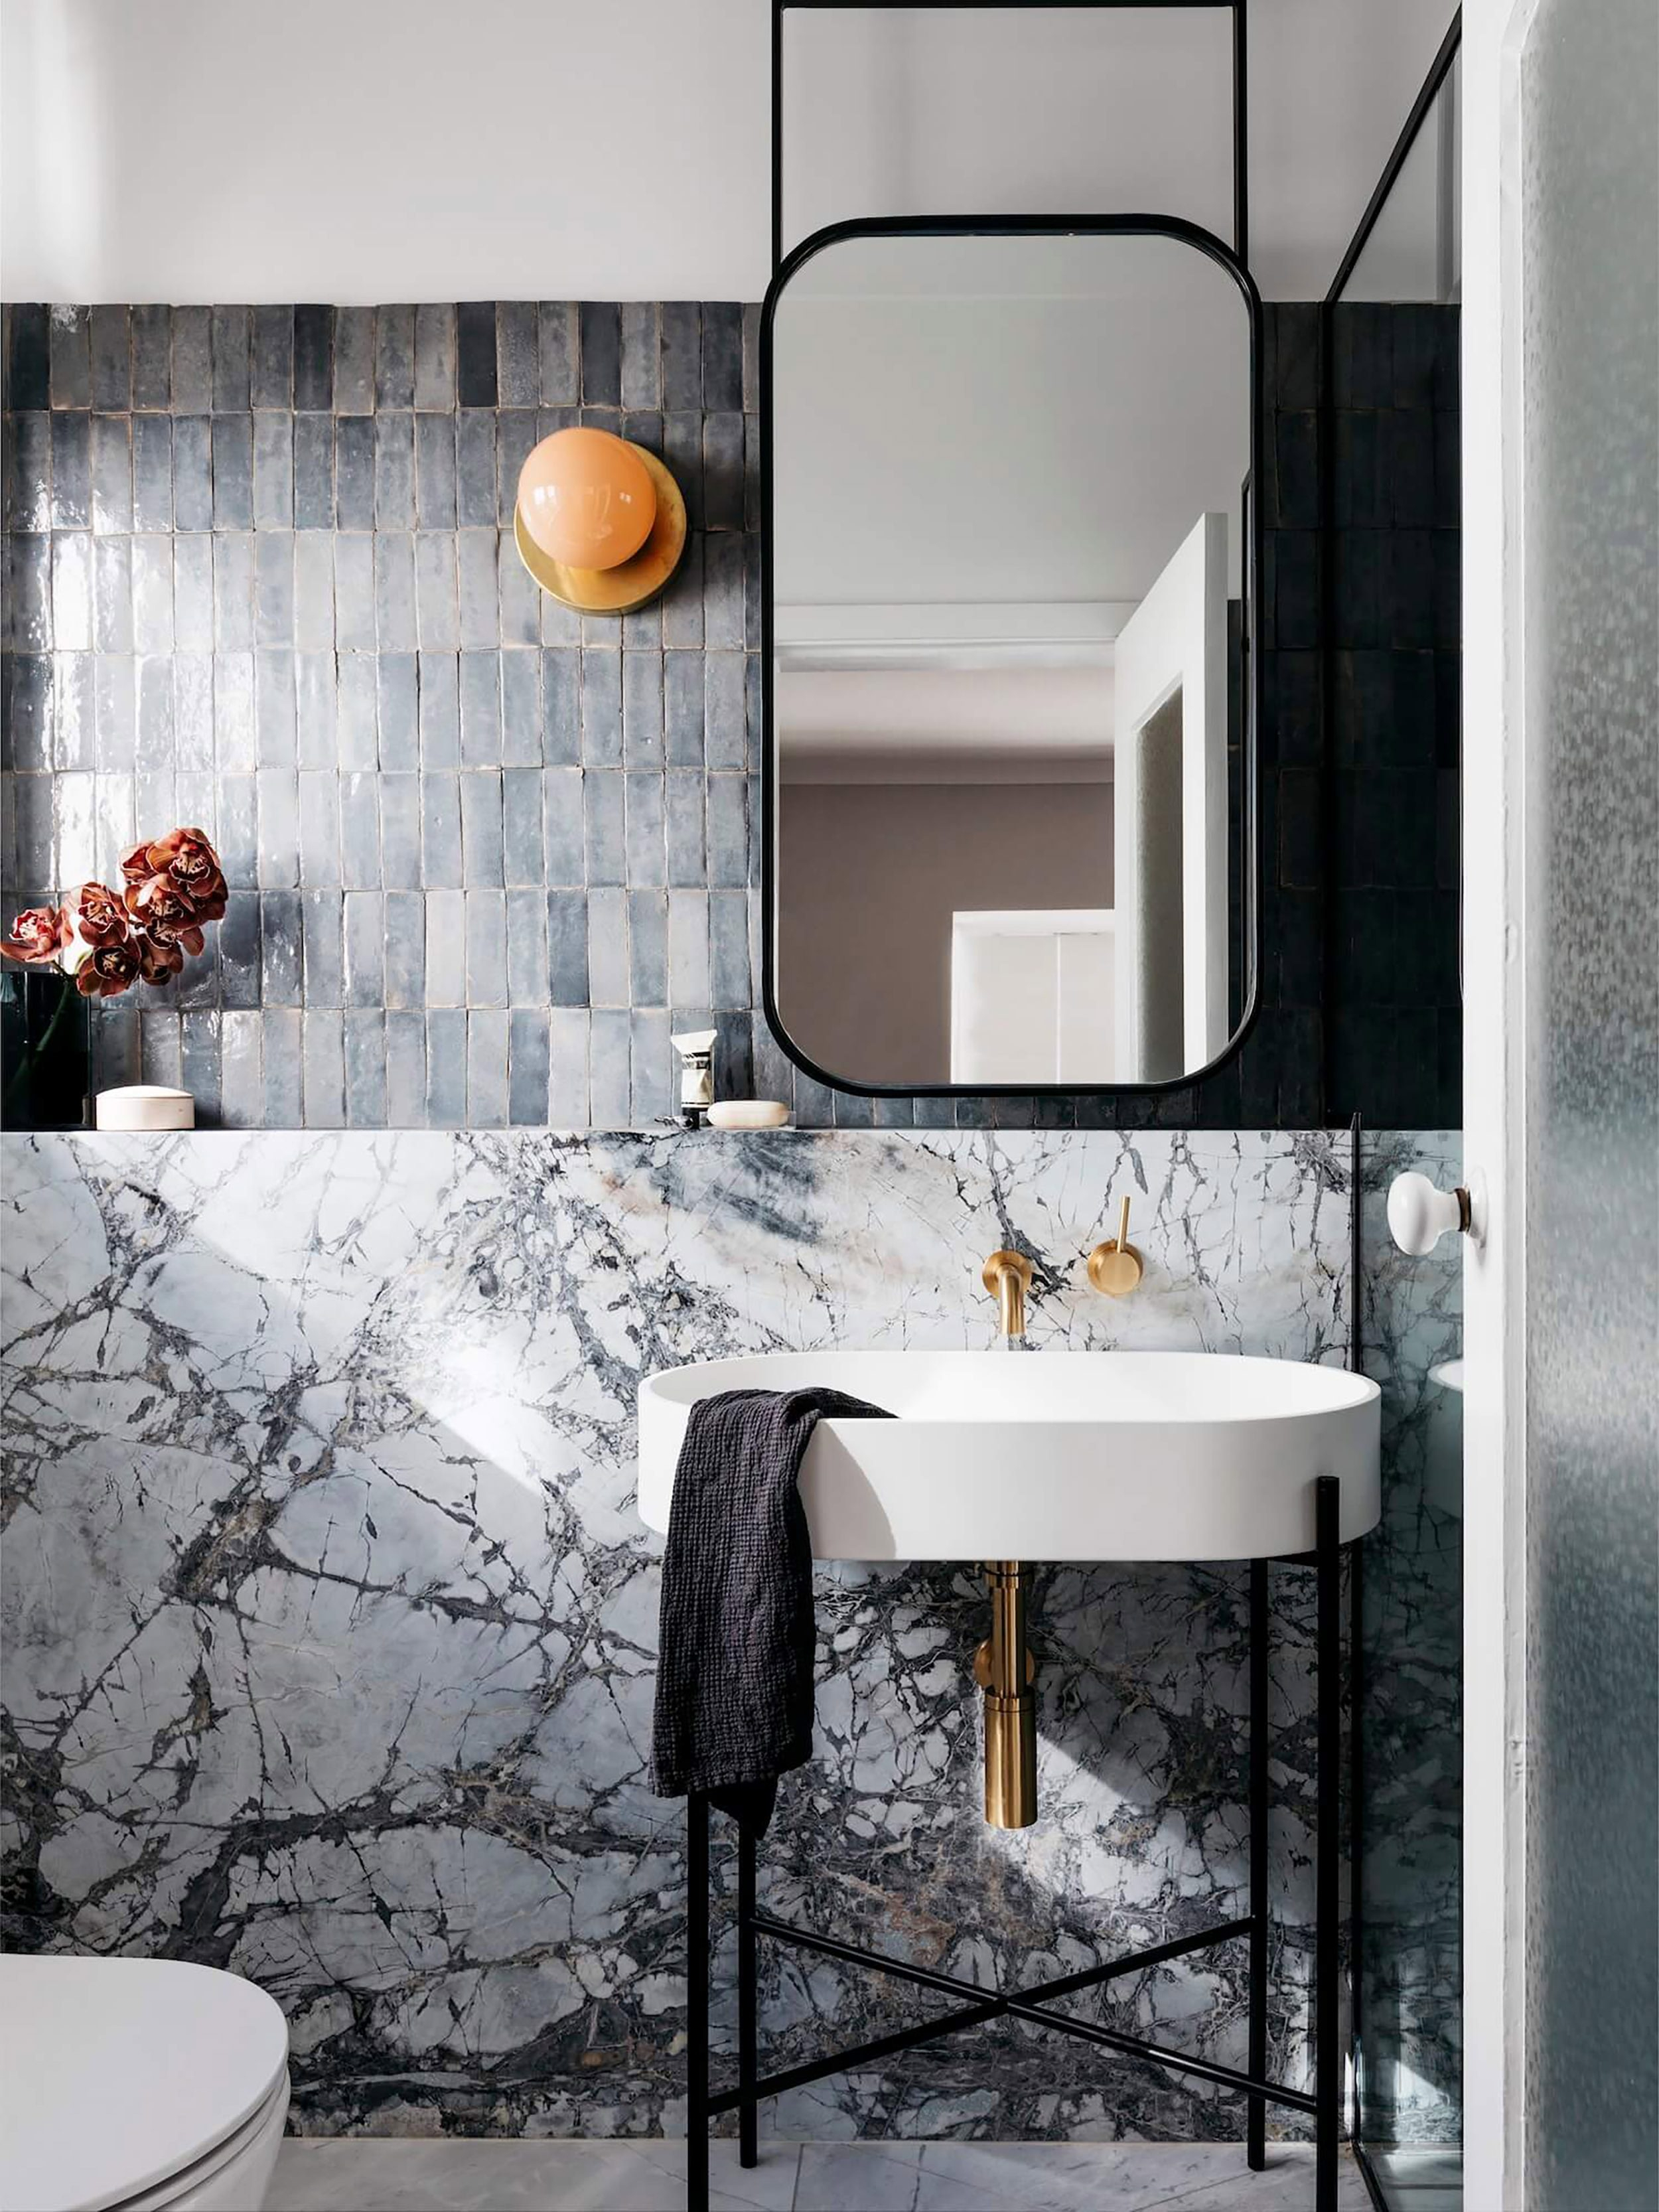 17 Fresh & Inspiring Bathroom Mirror Ideas To Shake Up Your With Industrial Modern & Contemporary Wall Mirrors (View 14 of 20)